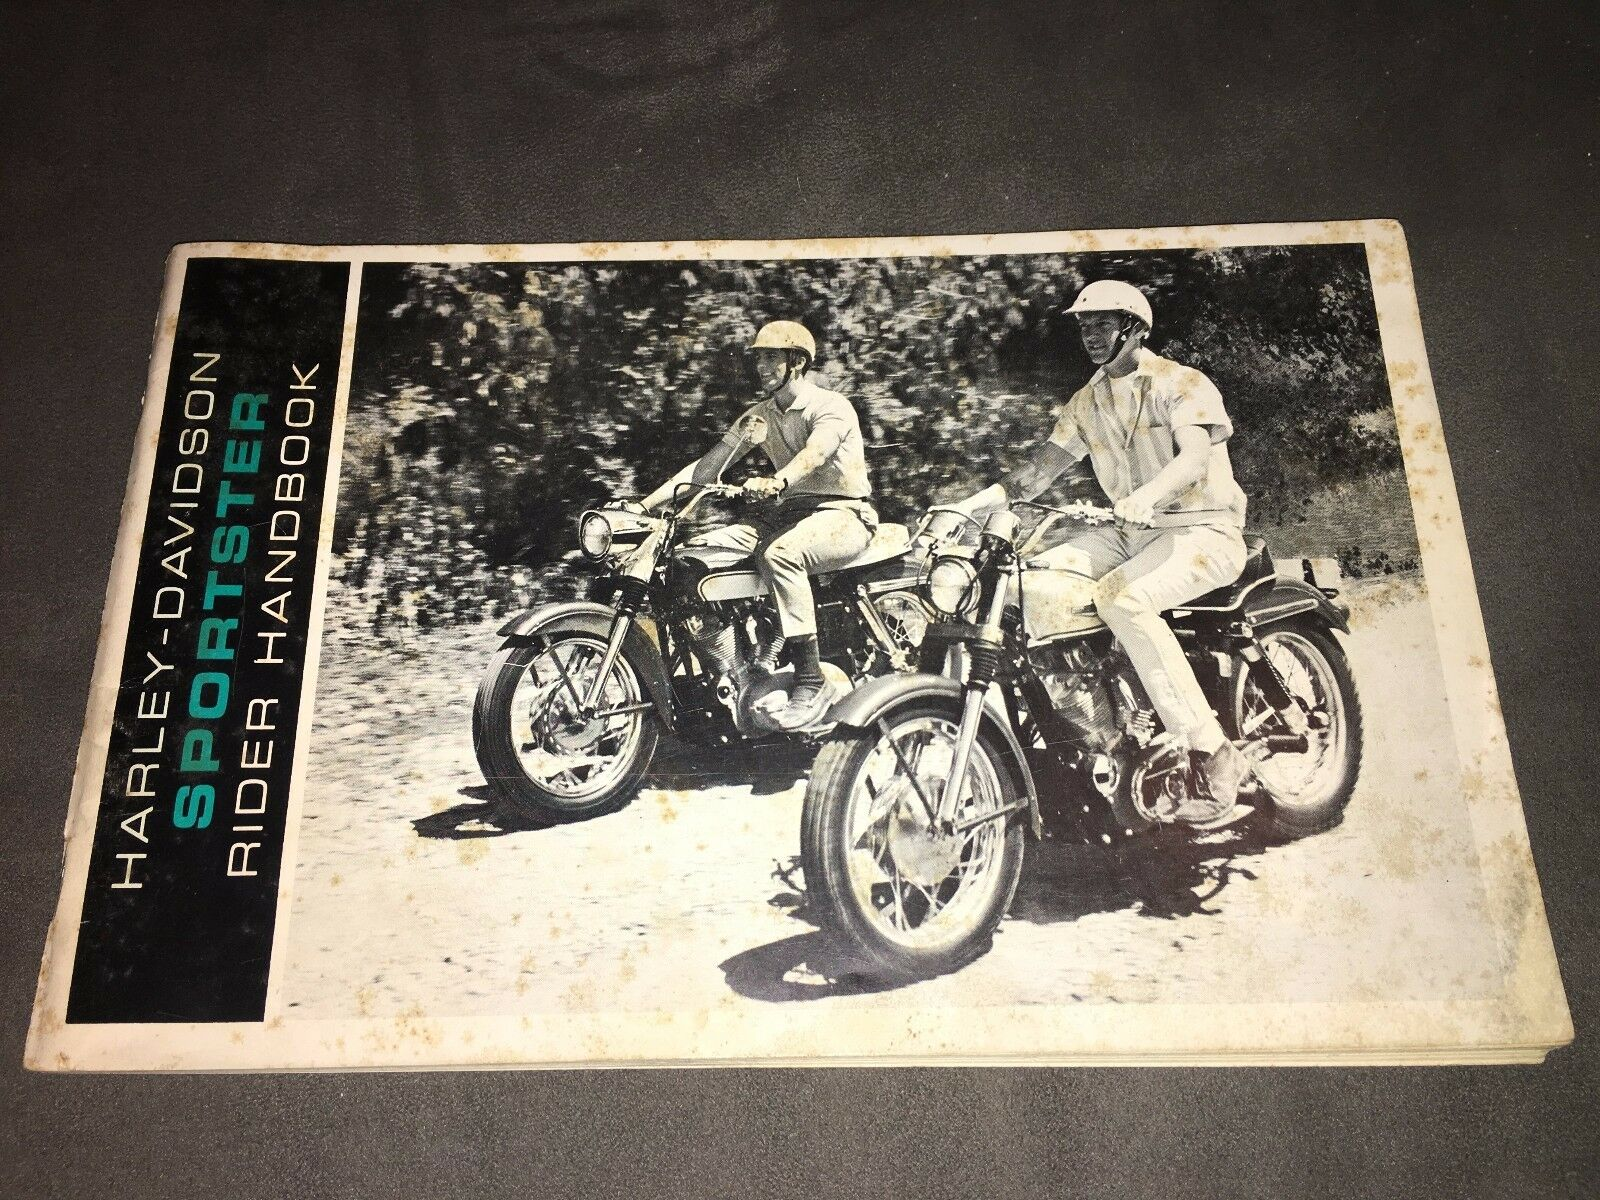 1966 66 Harley Davidson Sportster Hummer Rider Handbook Owners Manual RARE!  1 of 10Only 1 available ...